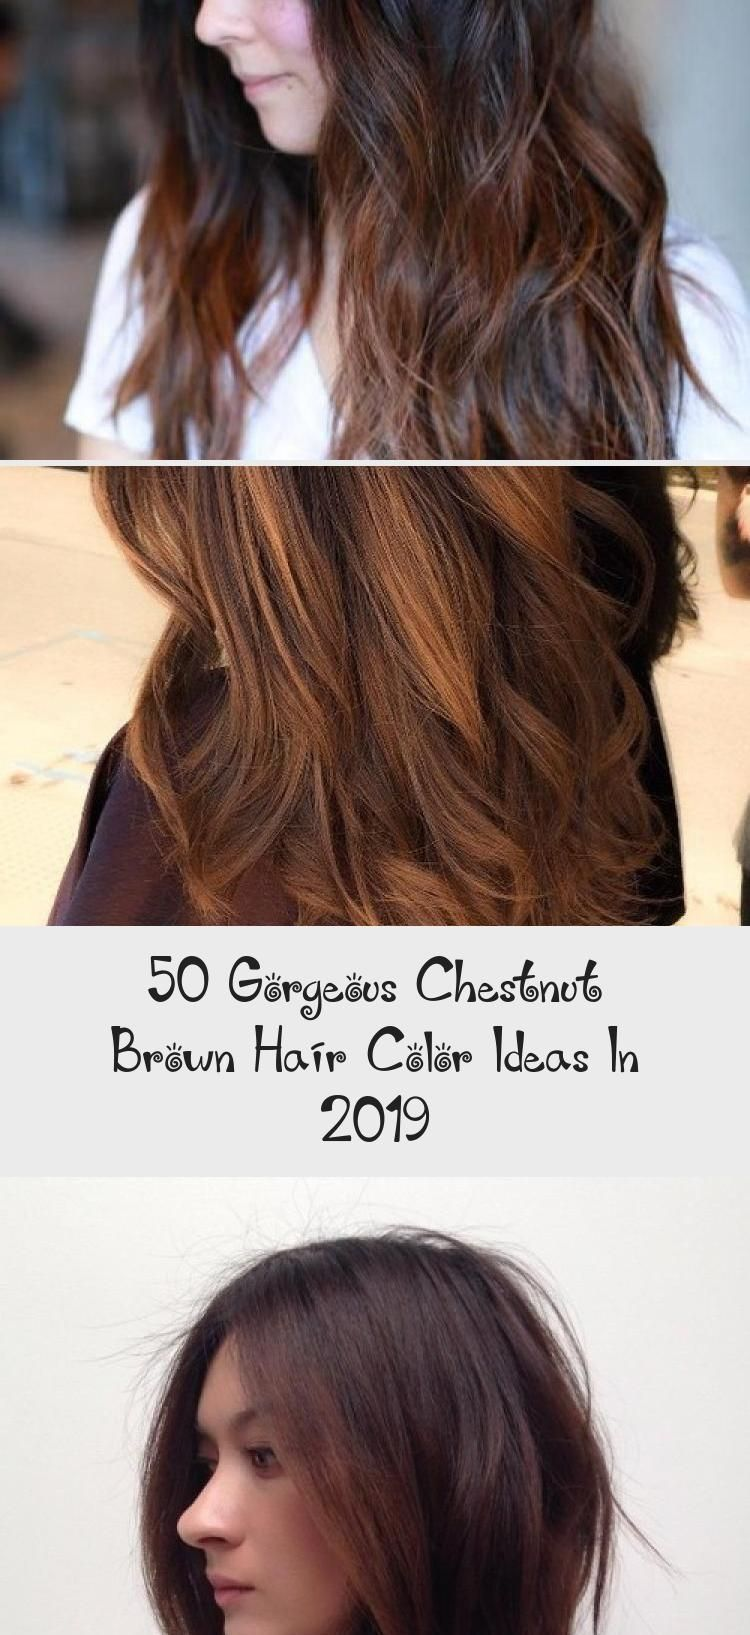 50 gorgeous auburn hair color ideas in 2019, #Auburn #brownhairpaleskin #color #… – Yx9 Search